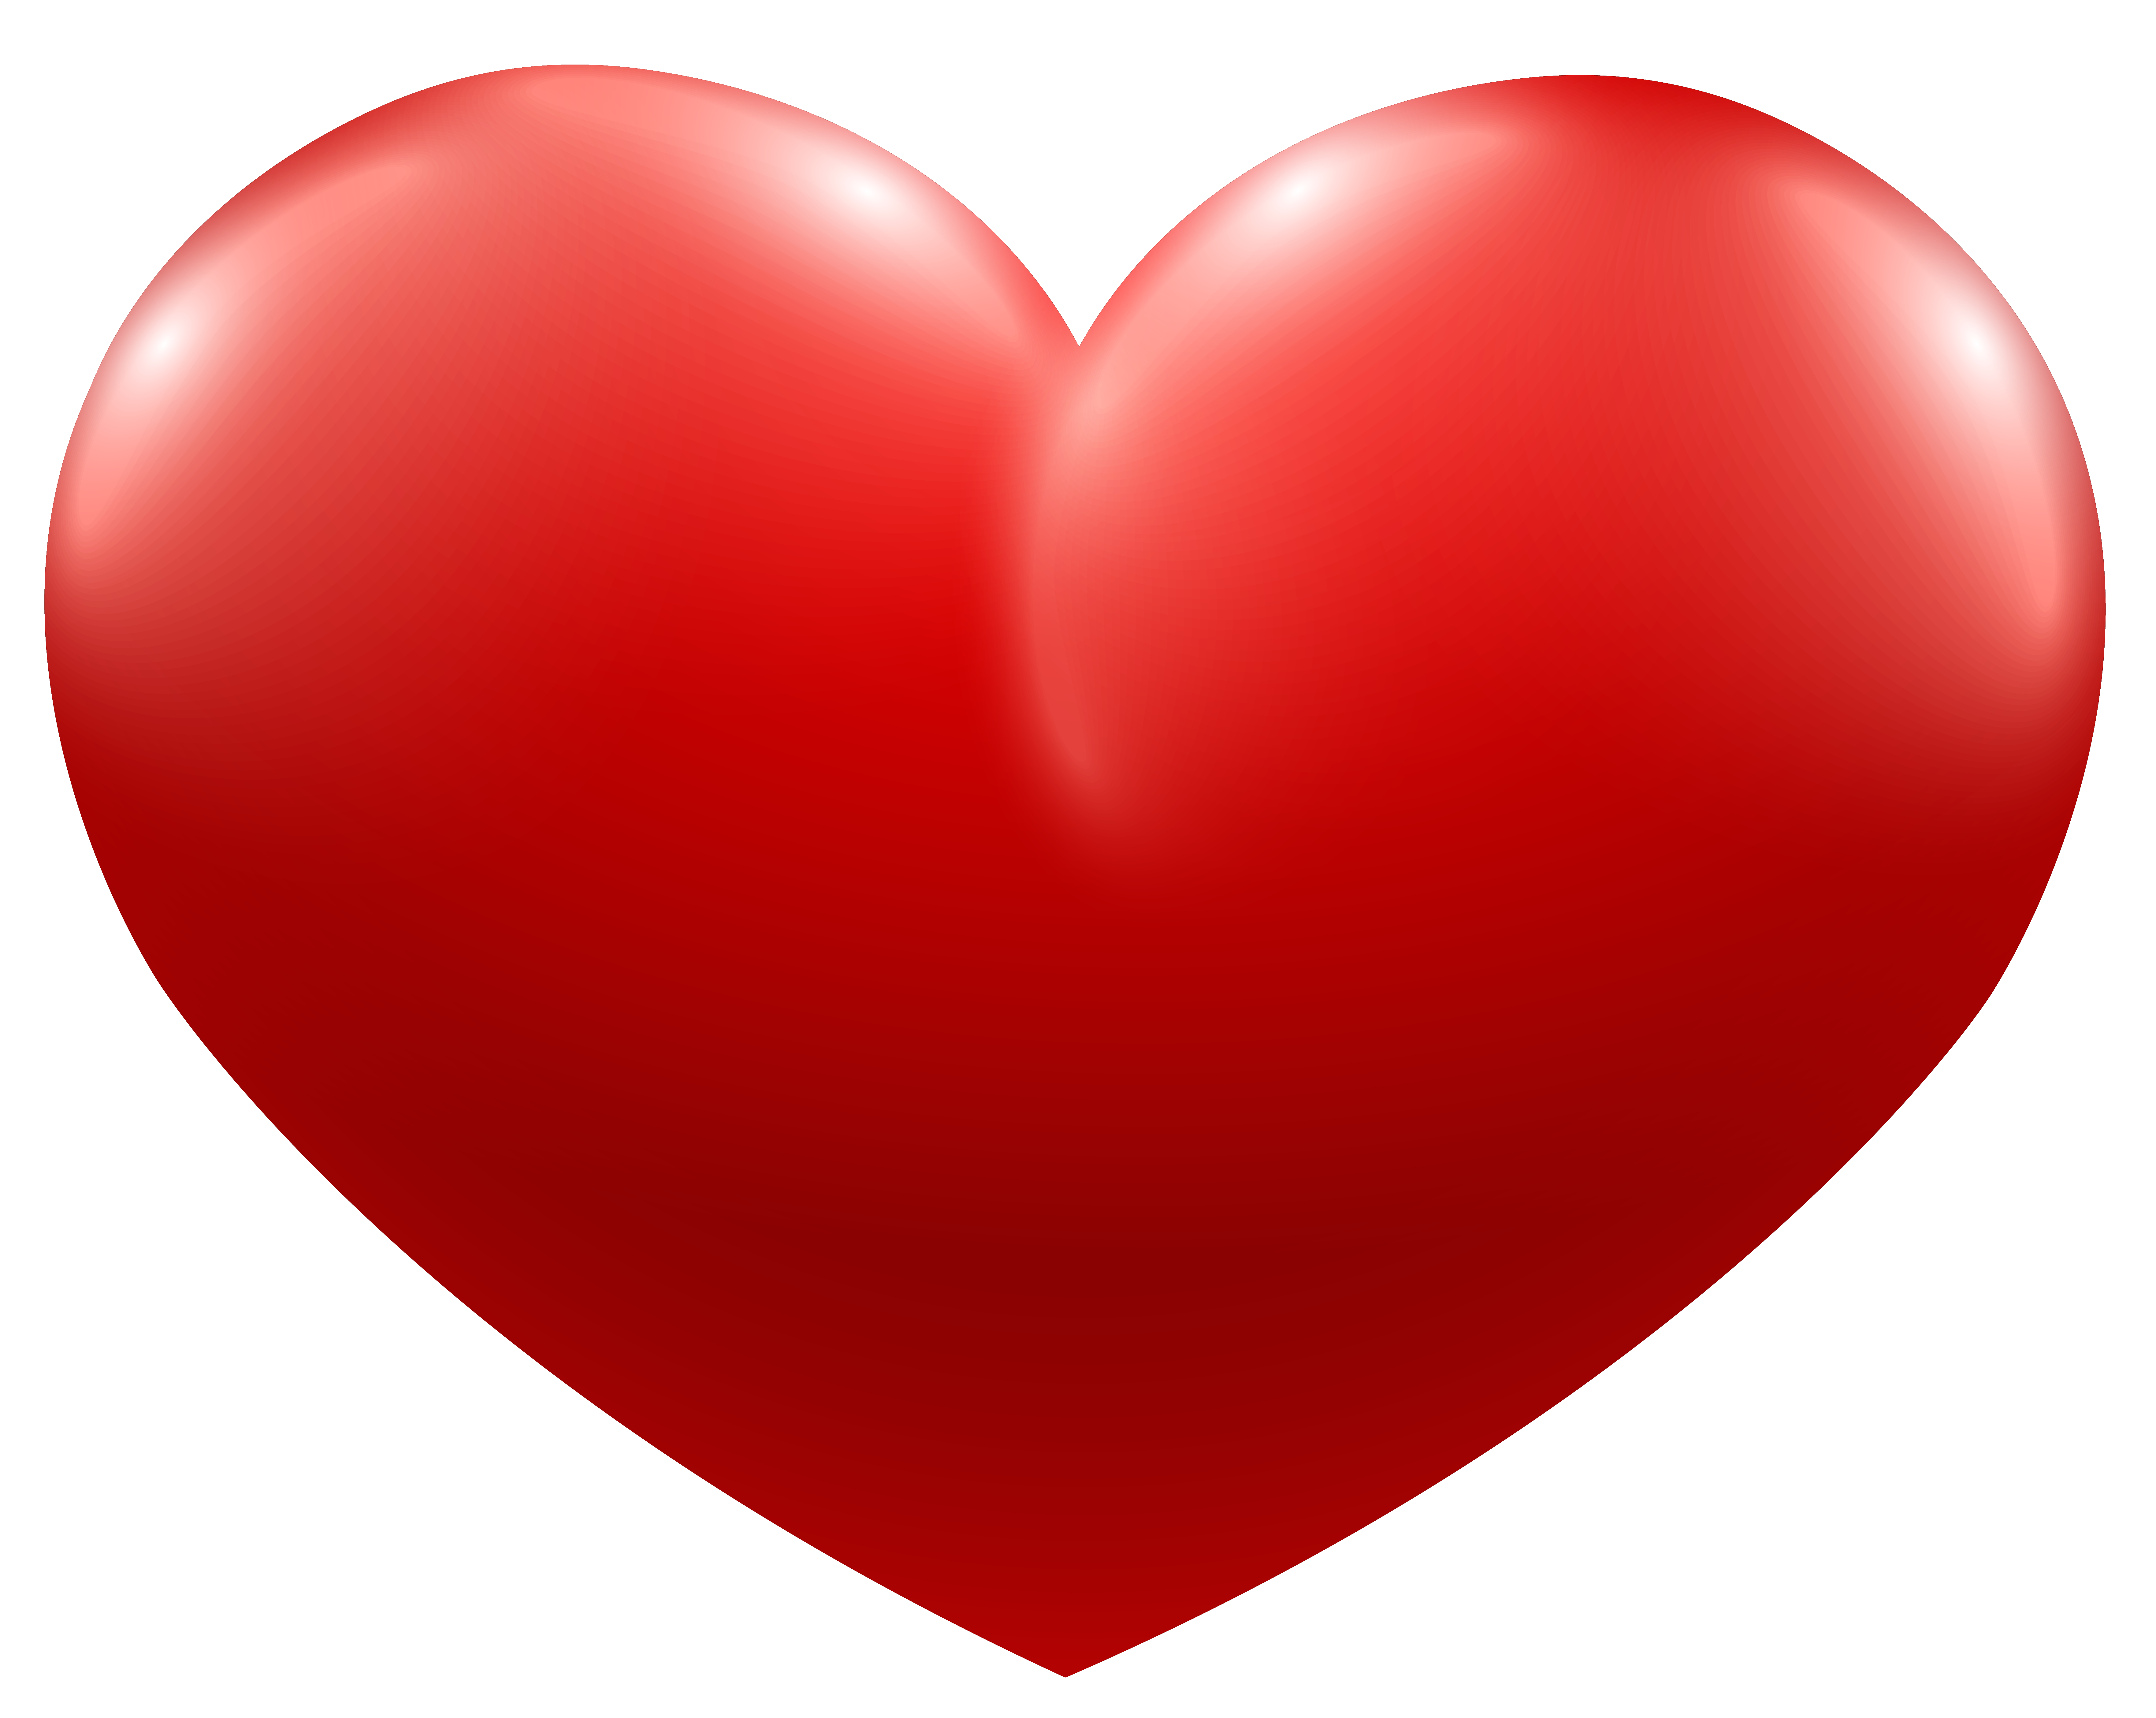 Red Heart Png Image Gallery Yopriceville High Quality Images And Transparent Png Free Clipart Red Heart Free Clip Art Valentines Clip